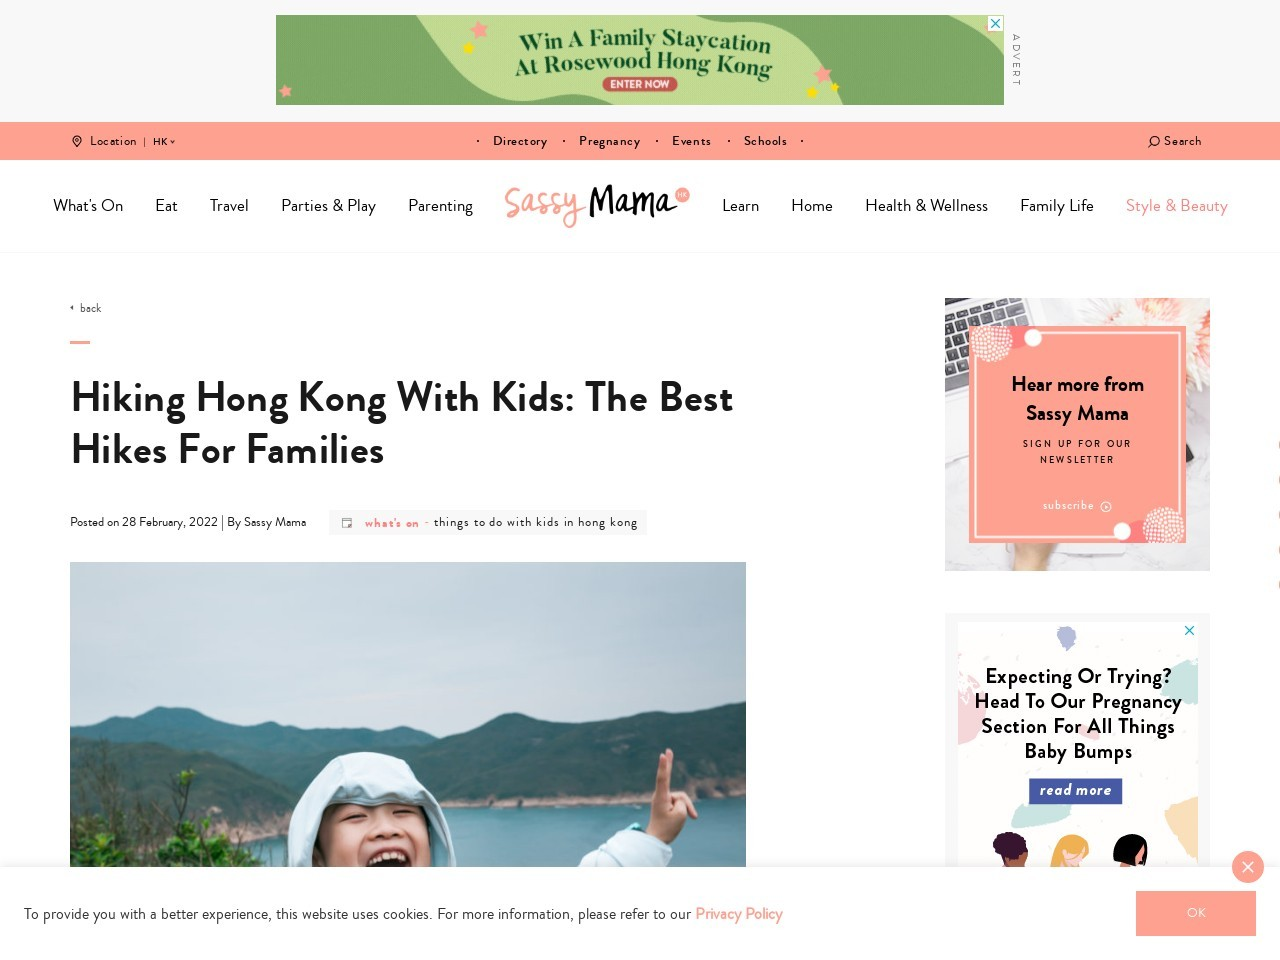 Best Hikes For Households: Where To Go Hiking With Kids in Hong Kong